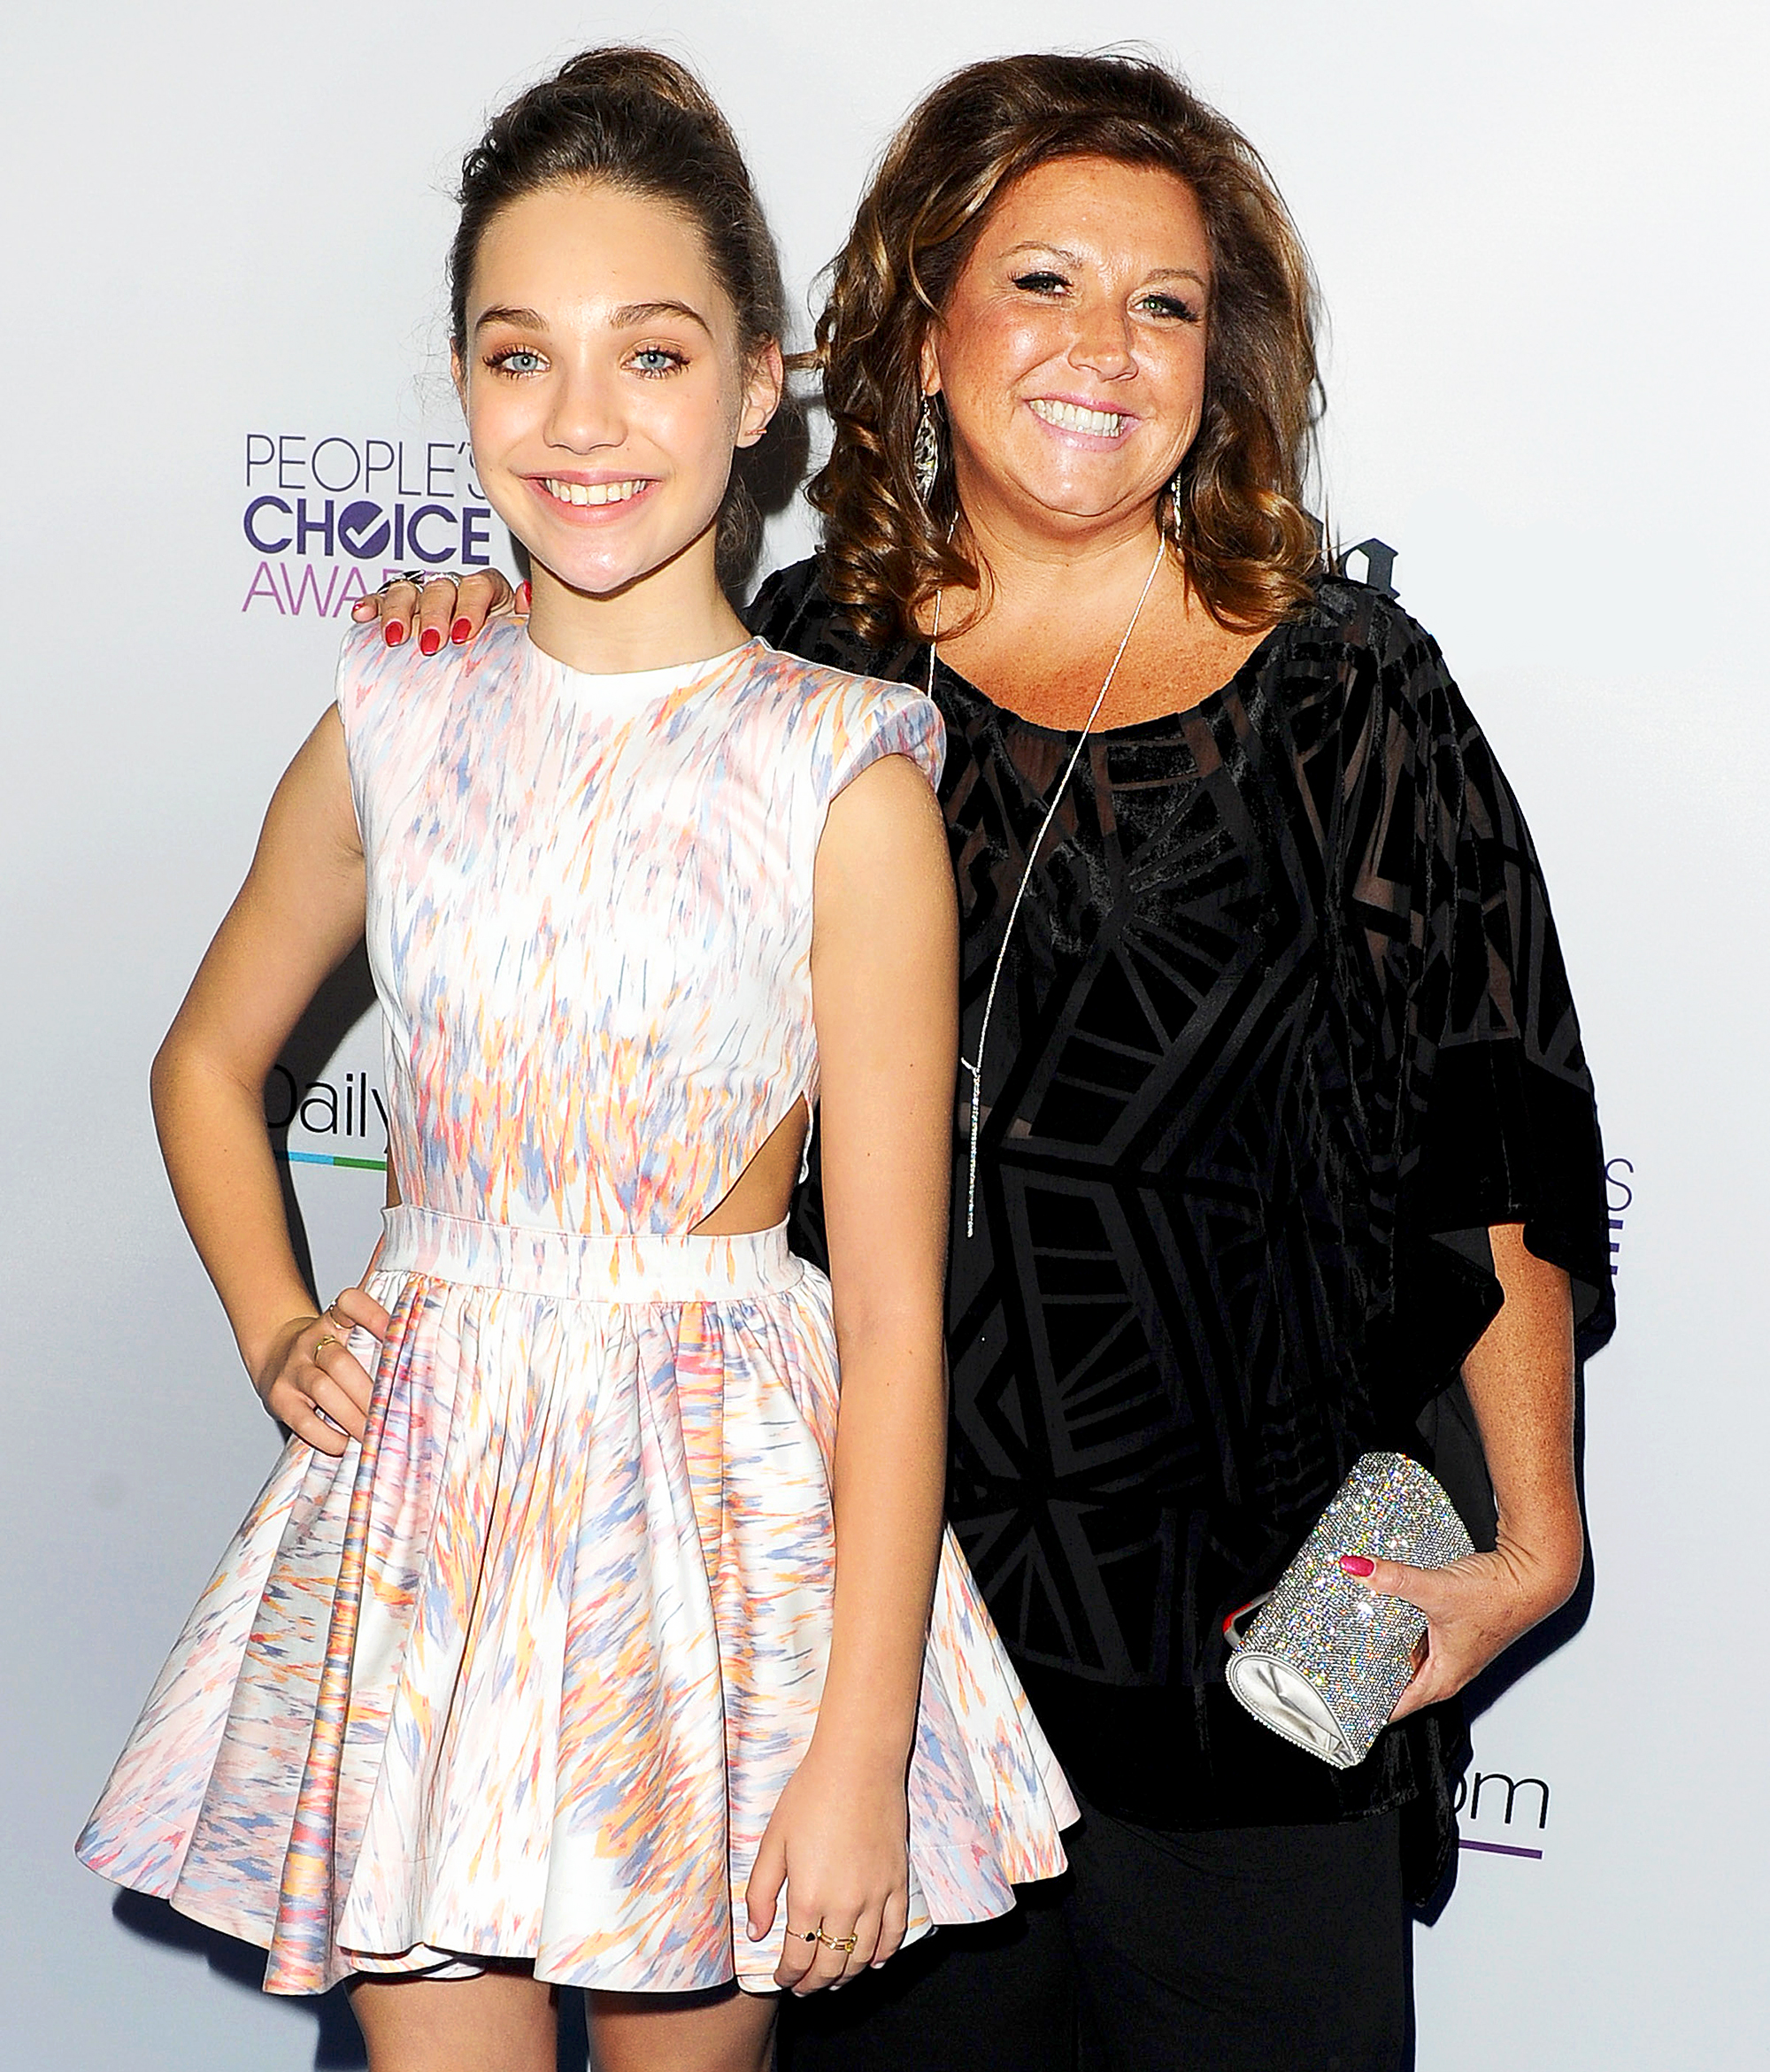 774e845c9f560 Maddie Ziegler: I 'Don't Keep in Contact With' Abby Lee Miller